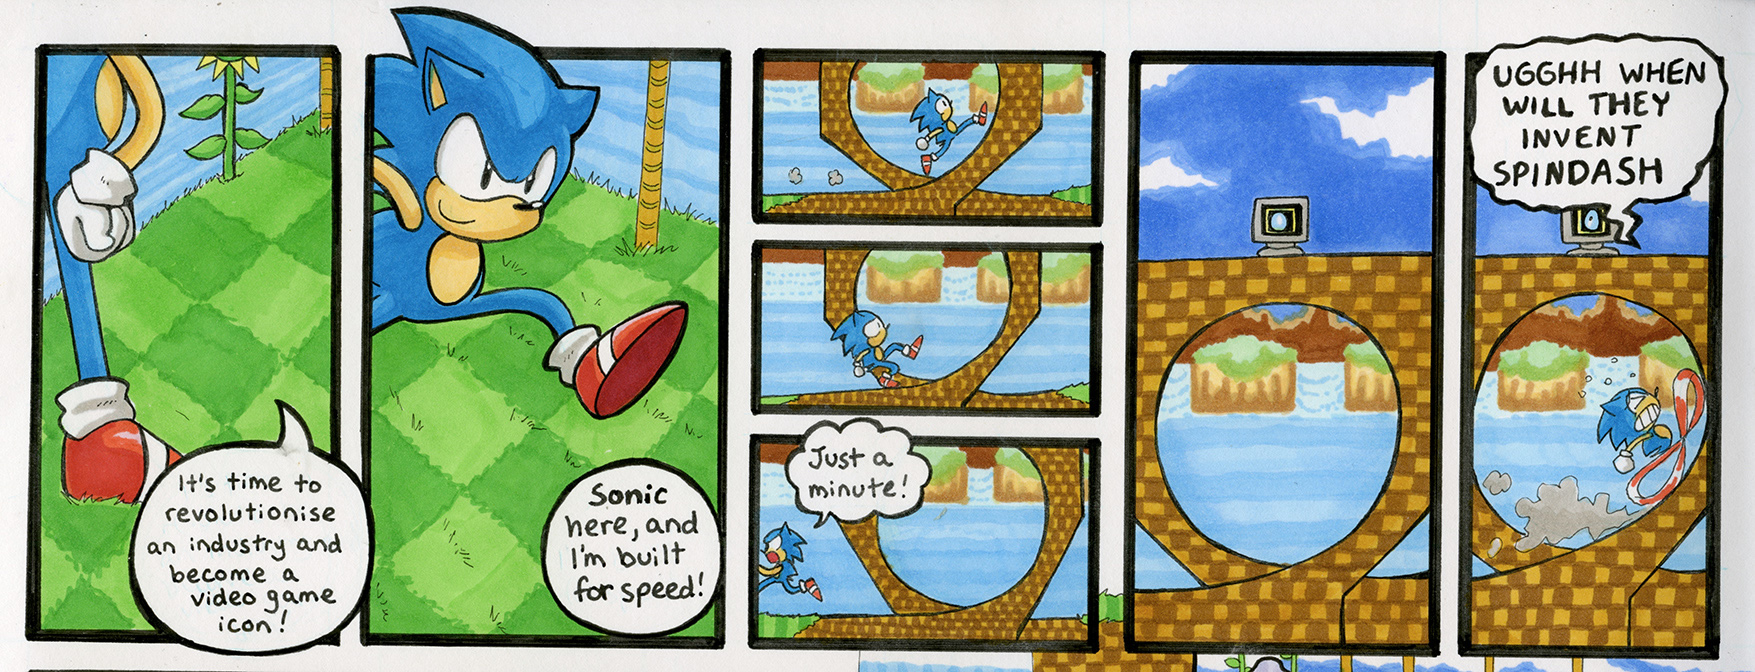 Sonic the Hedgehog 1: Green Hill Zone, Act 1